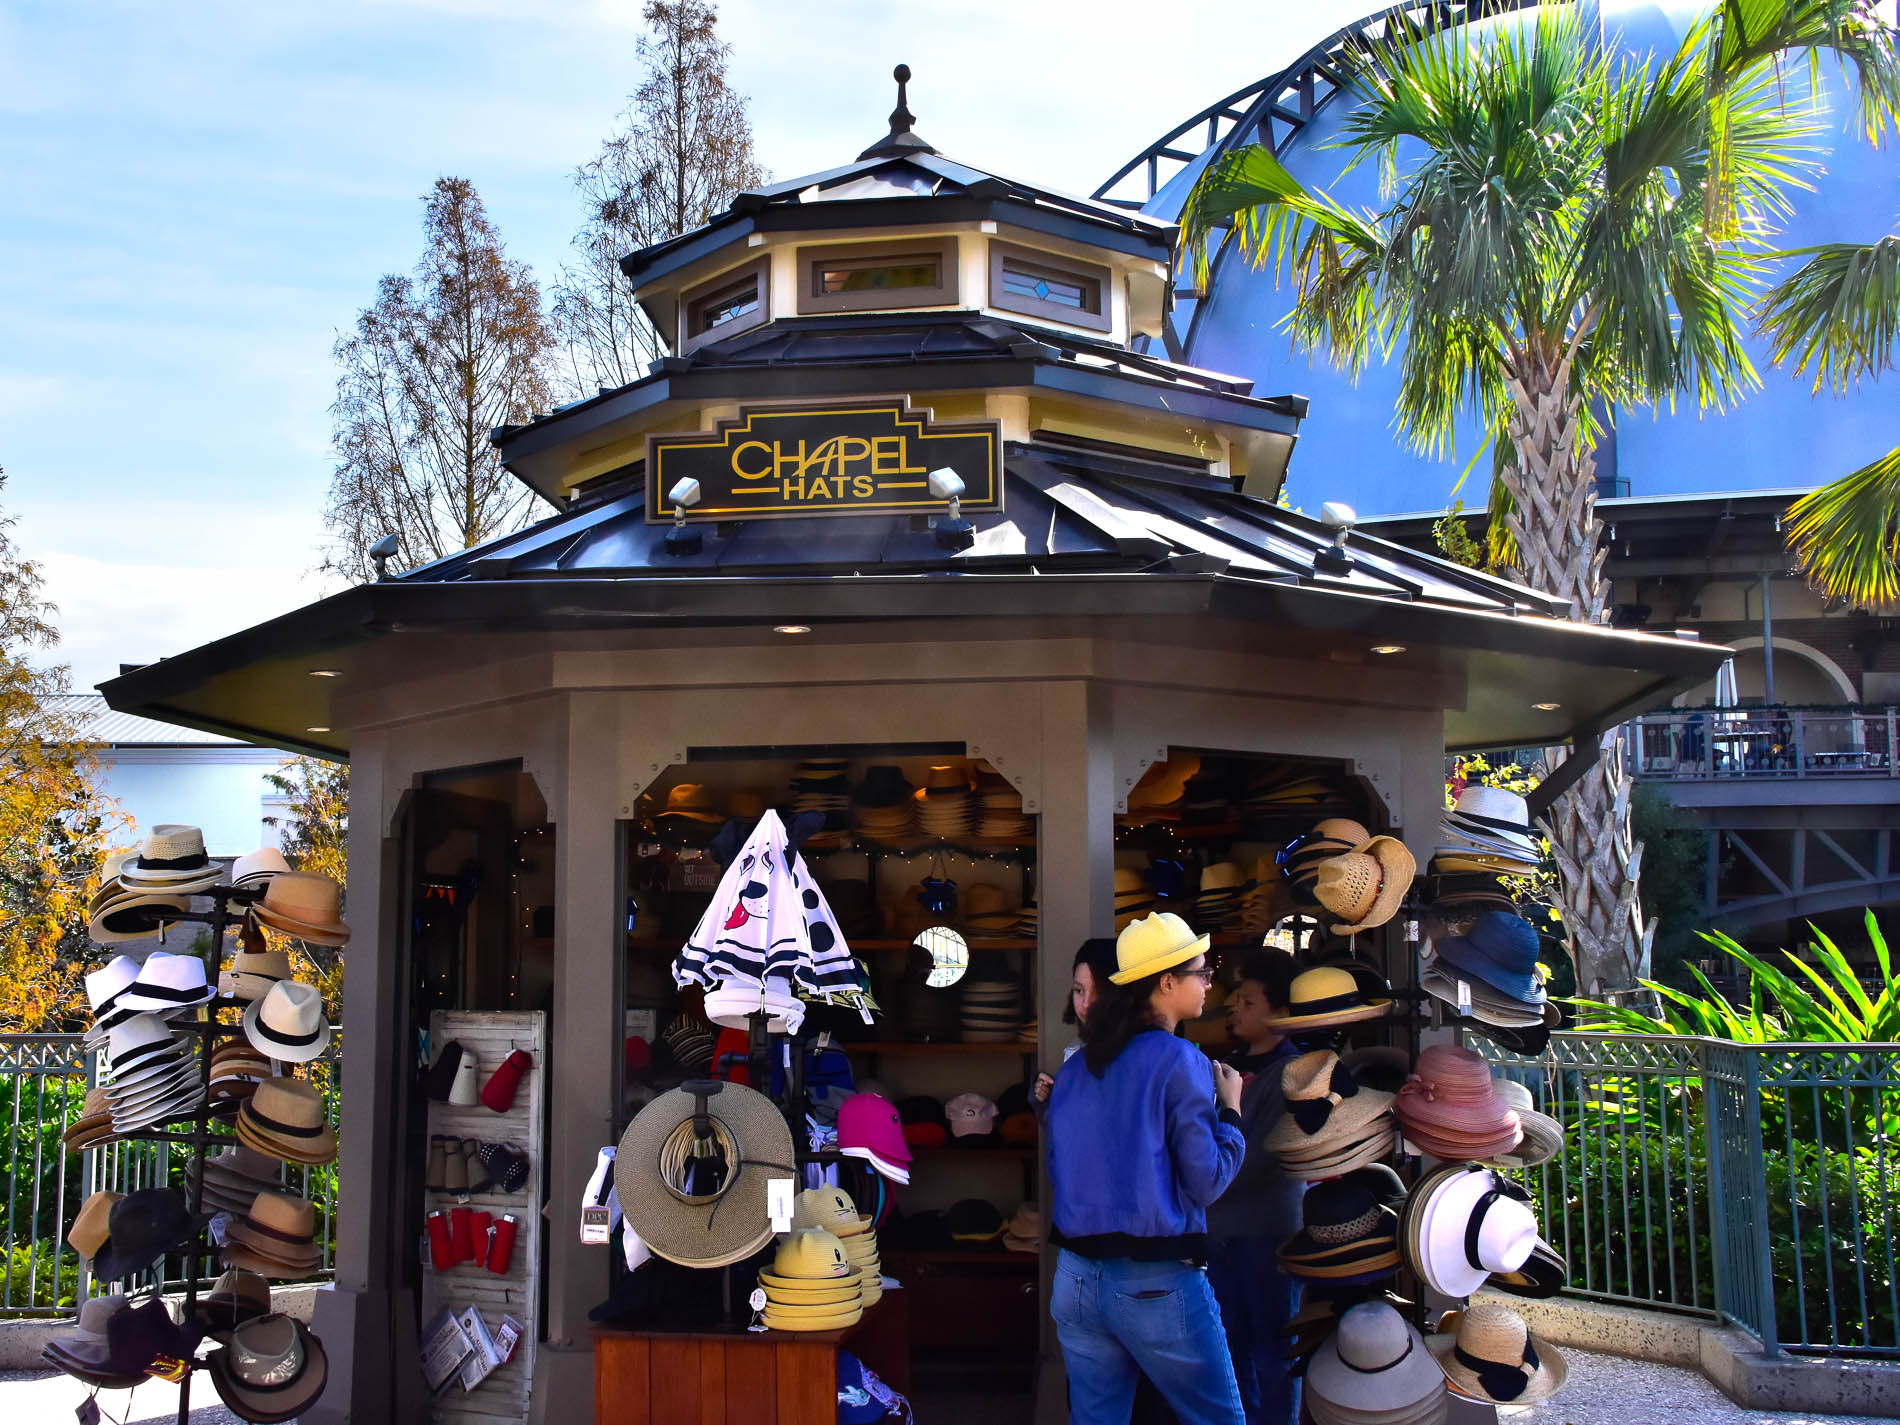 65ef15a6b2a39 Mouseplanet - Another Year at Disney Springs  A Photo Tour by Donald ...